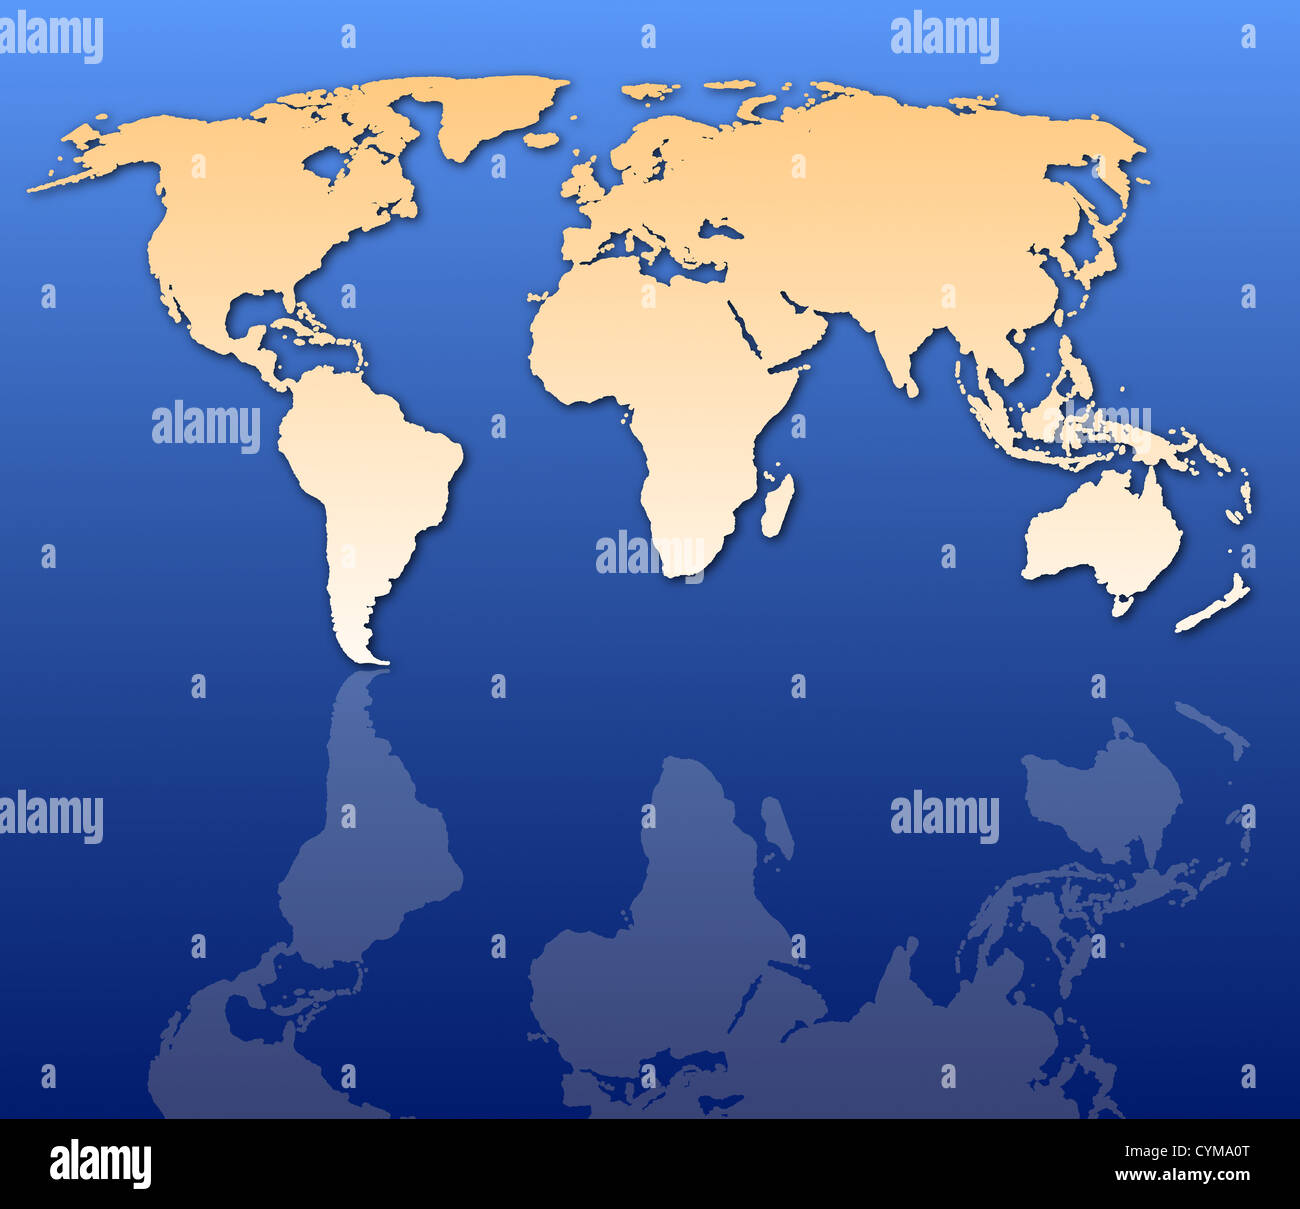 global economy concept with world map in blue - Stock Image